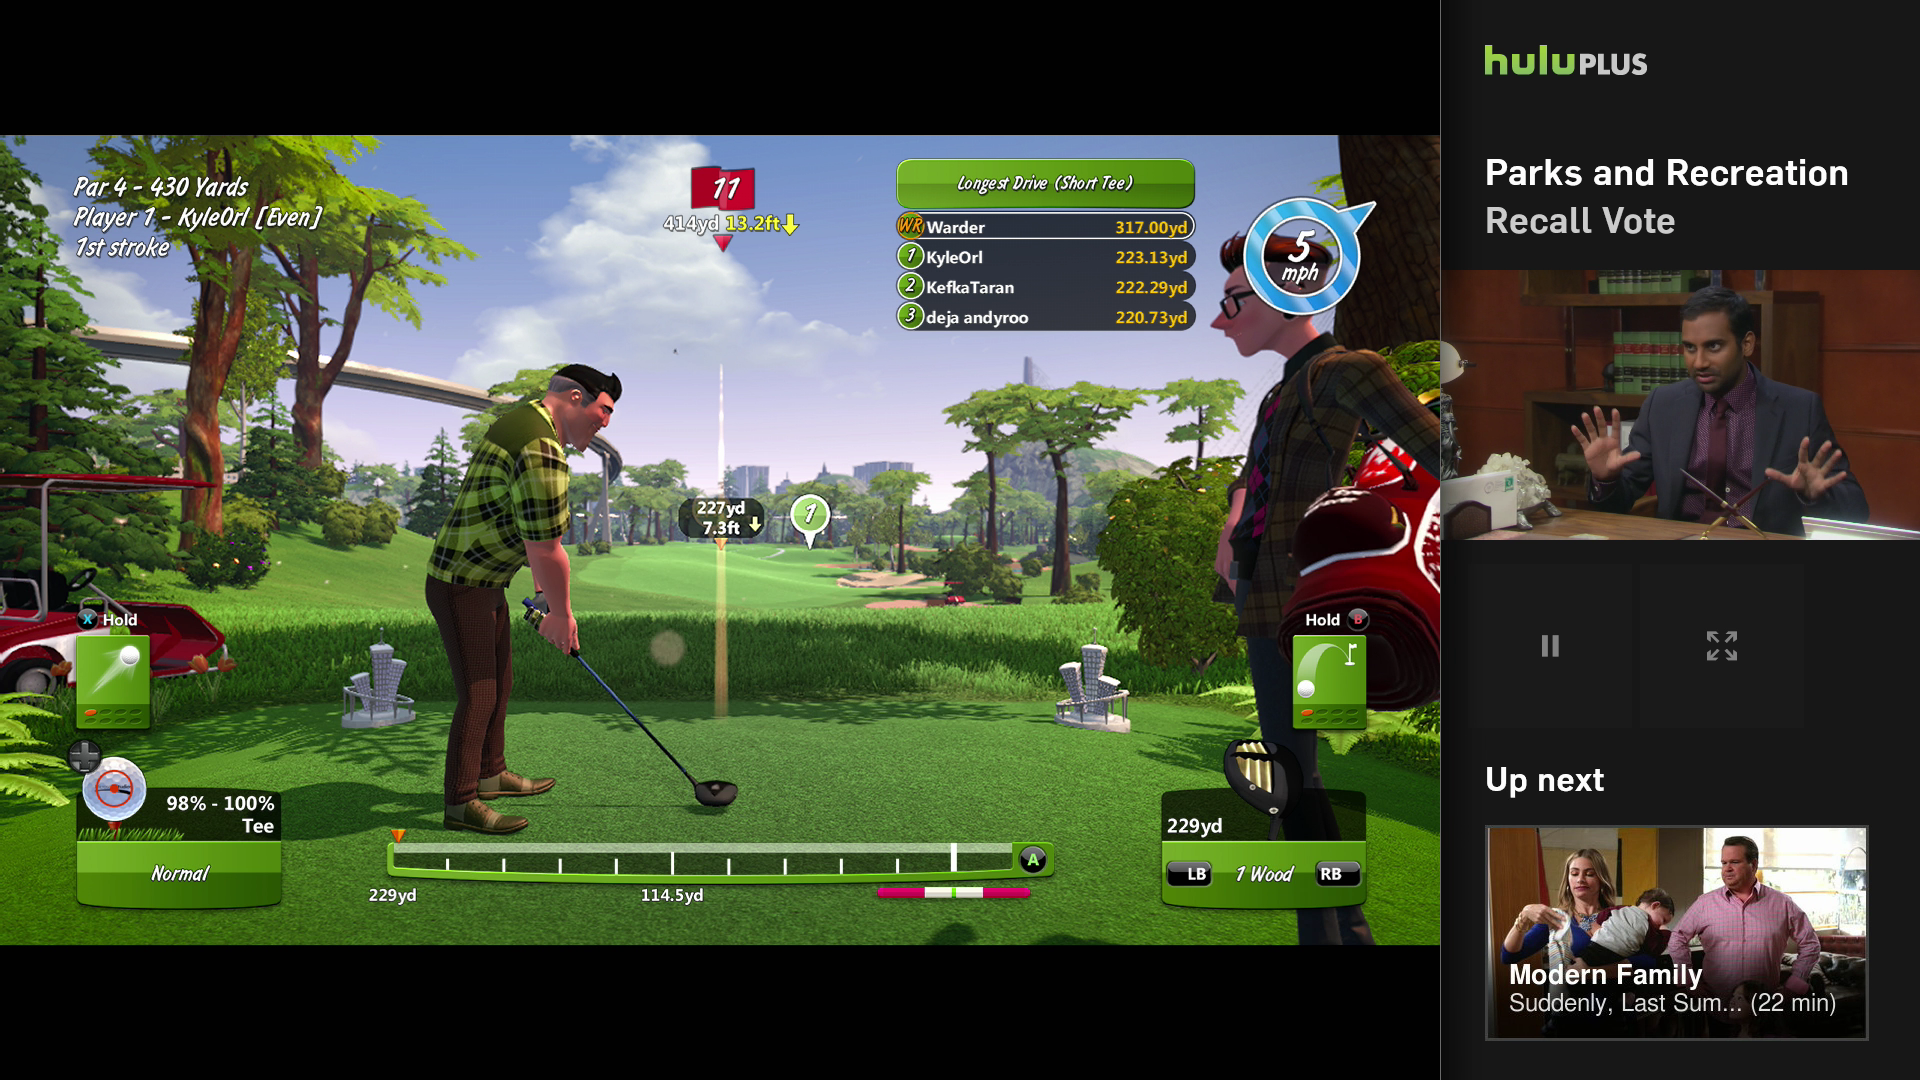 Nothing goes better with virtual golf than a show that's loosely about parks.